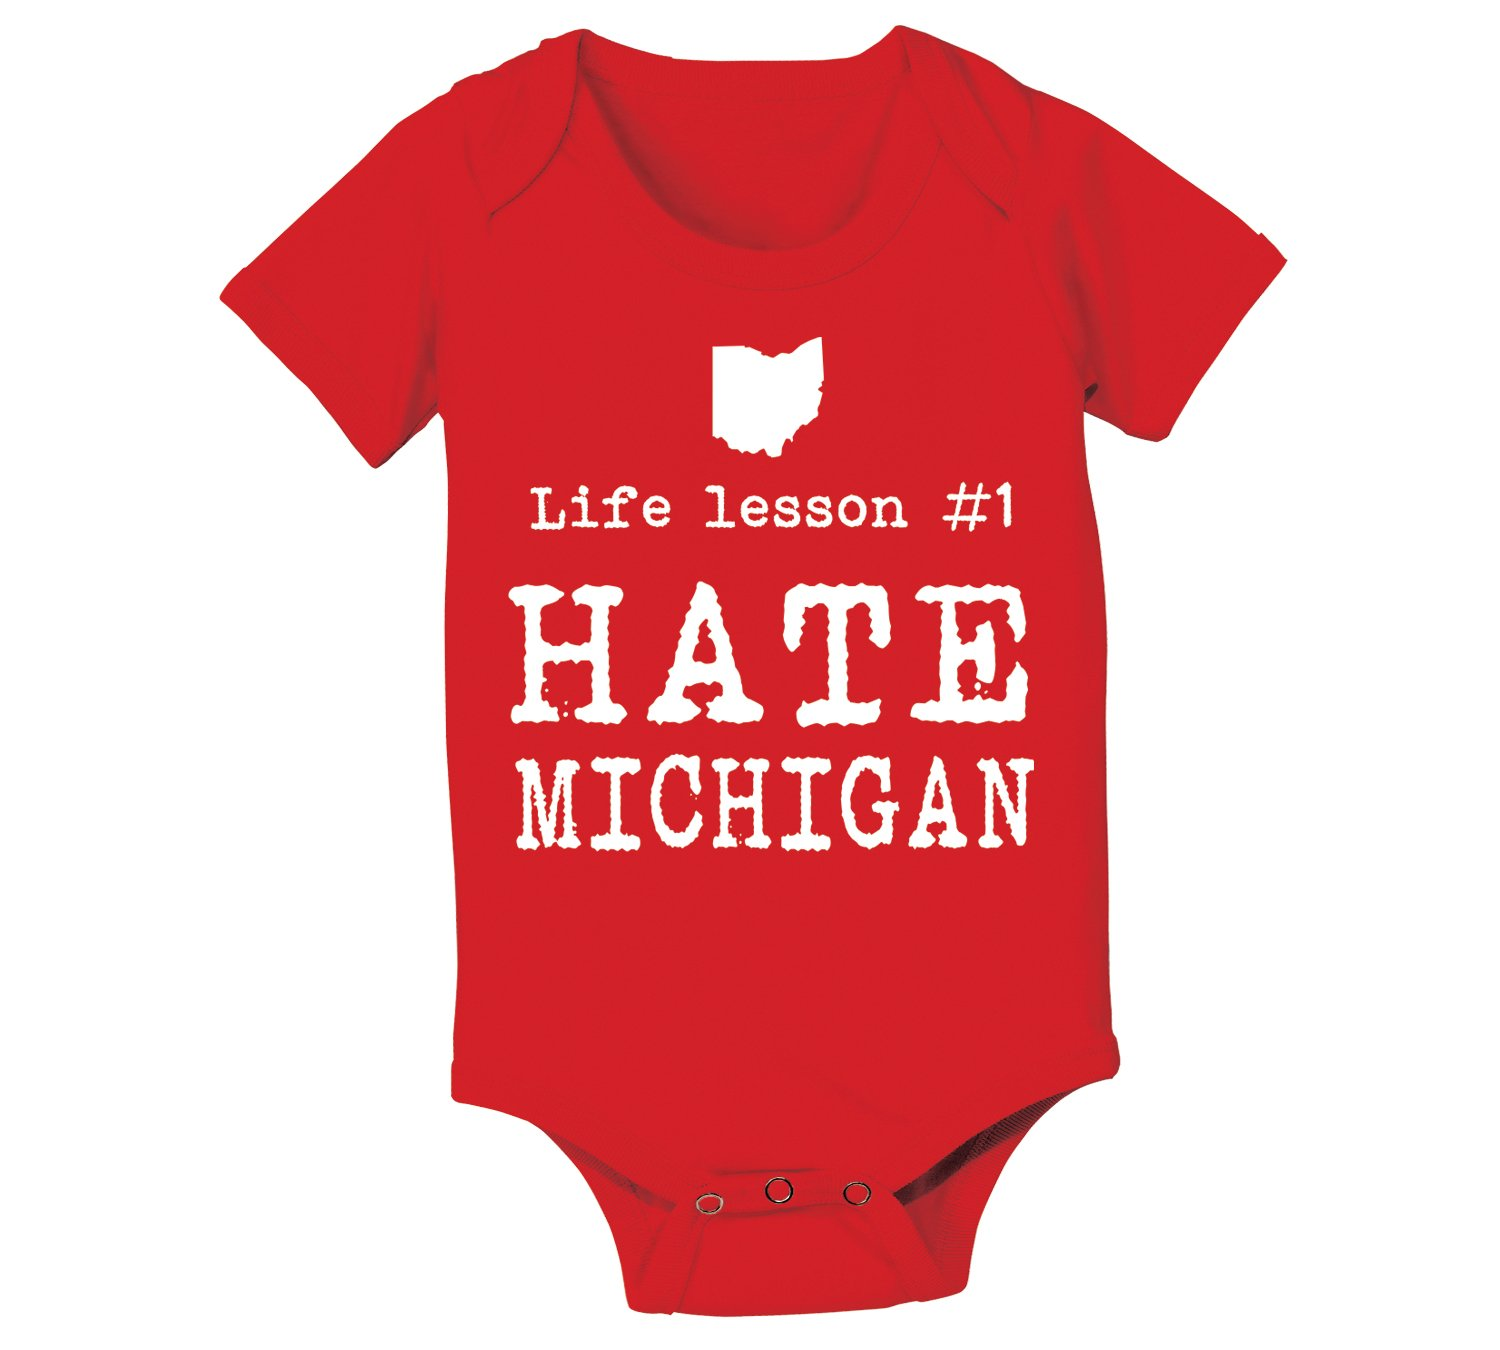 Life Lesson #1 Hate Michigan Funny State of Ohio Football Classic Team Up North Hate M Humor OH IO Sports Baby One Piece Newborn Red by Funny Threads Outlet